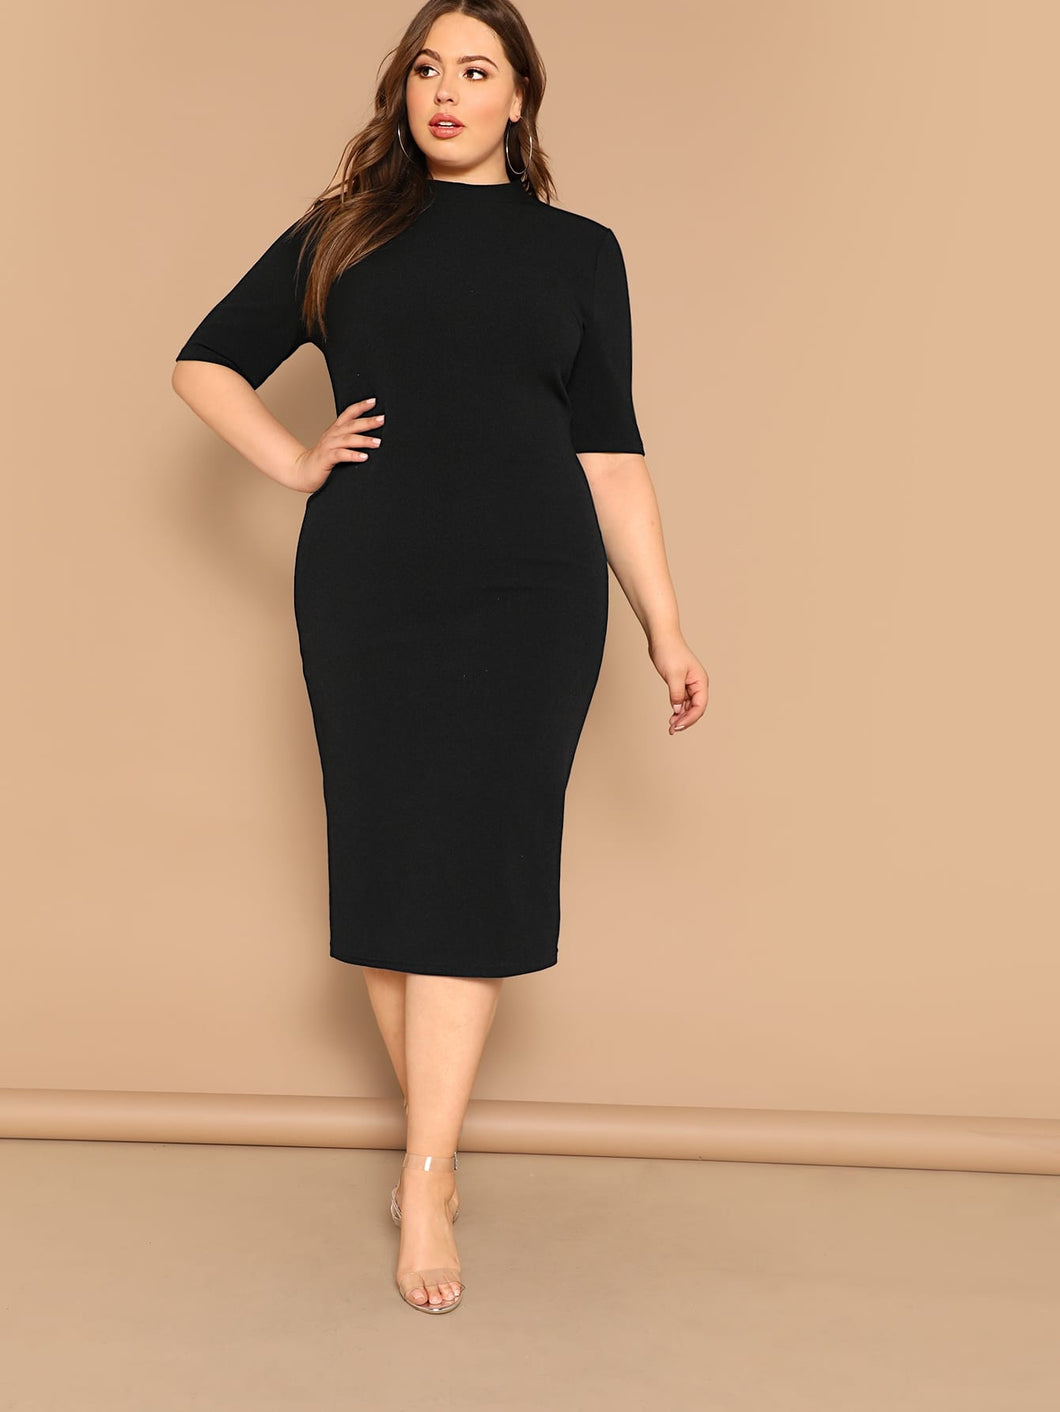 Plus Mock-neck Solid Pencil Dress